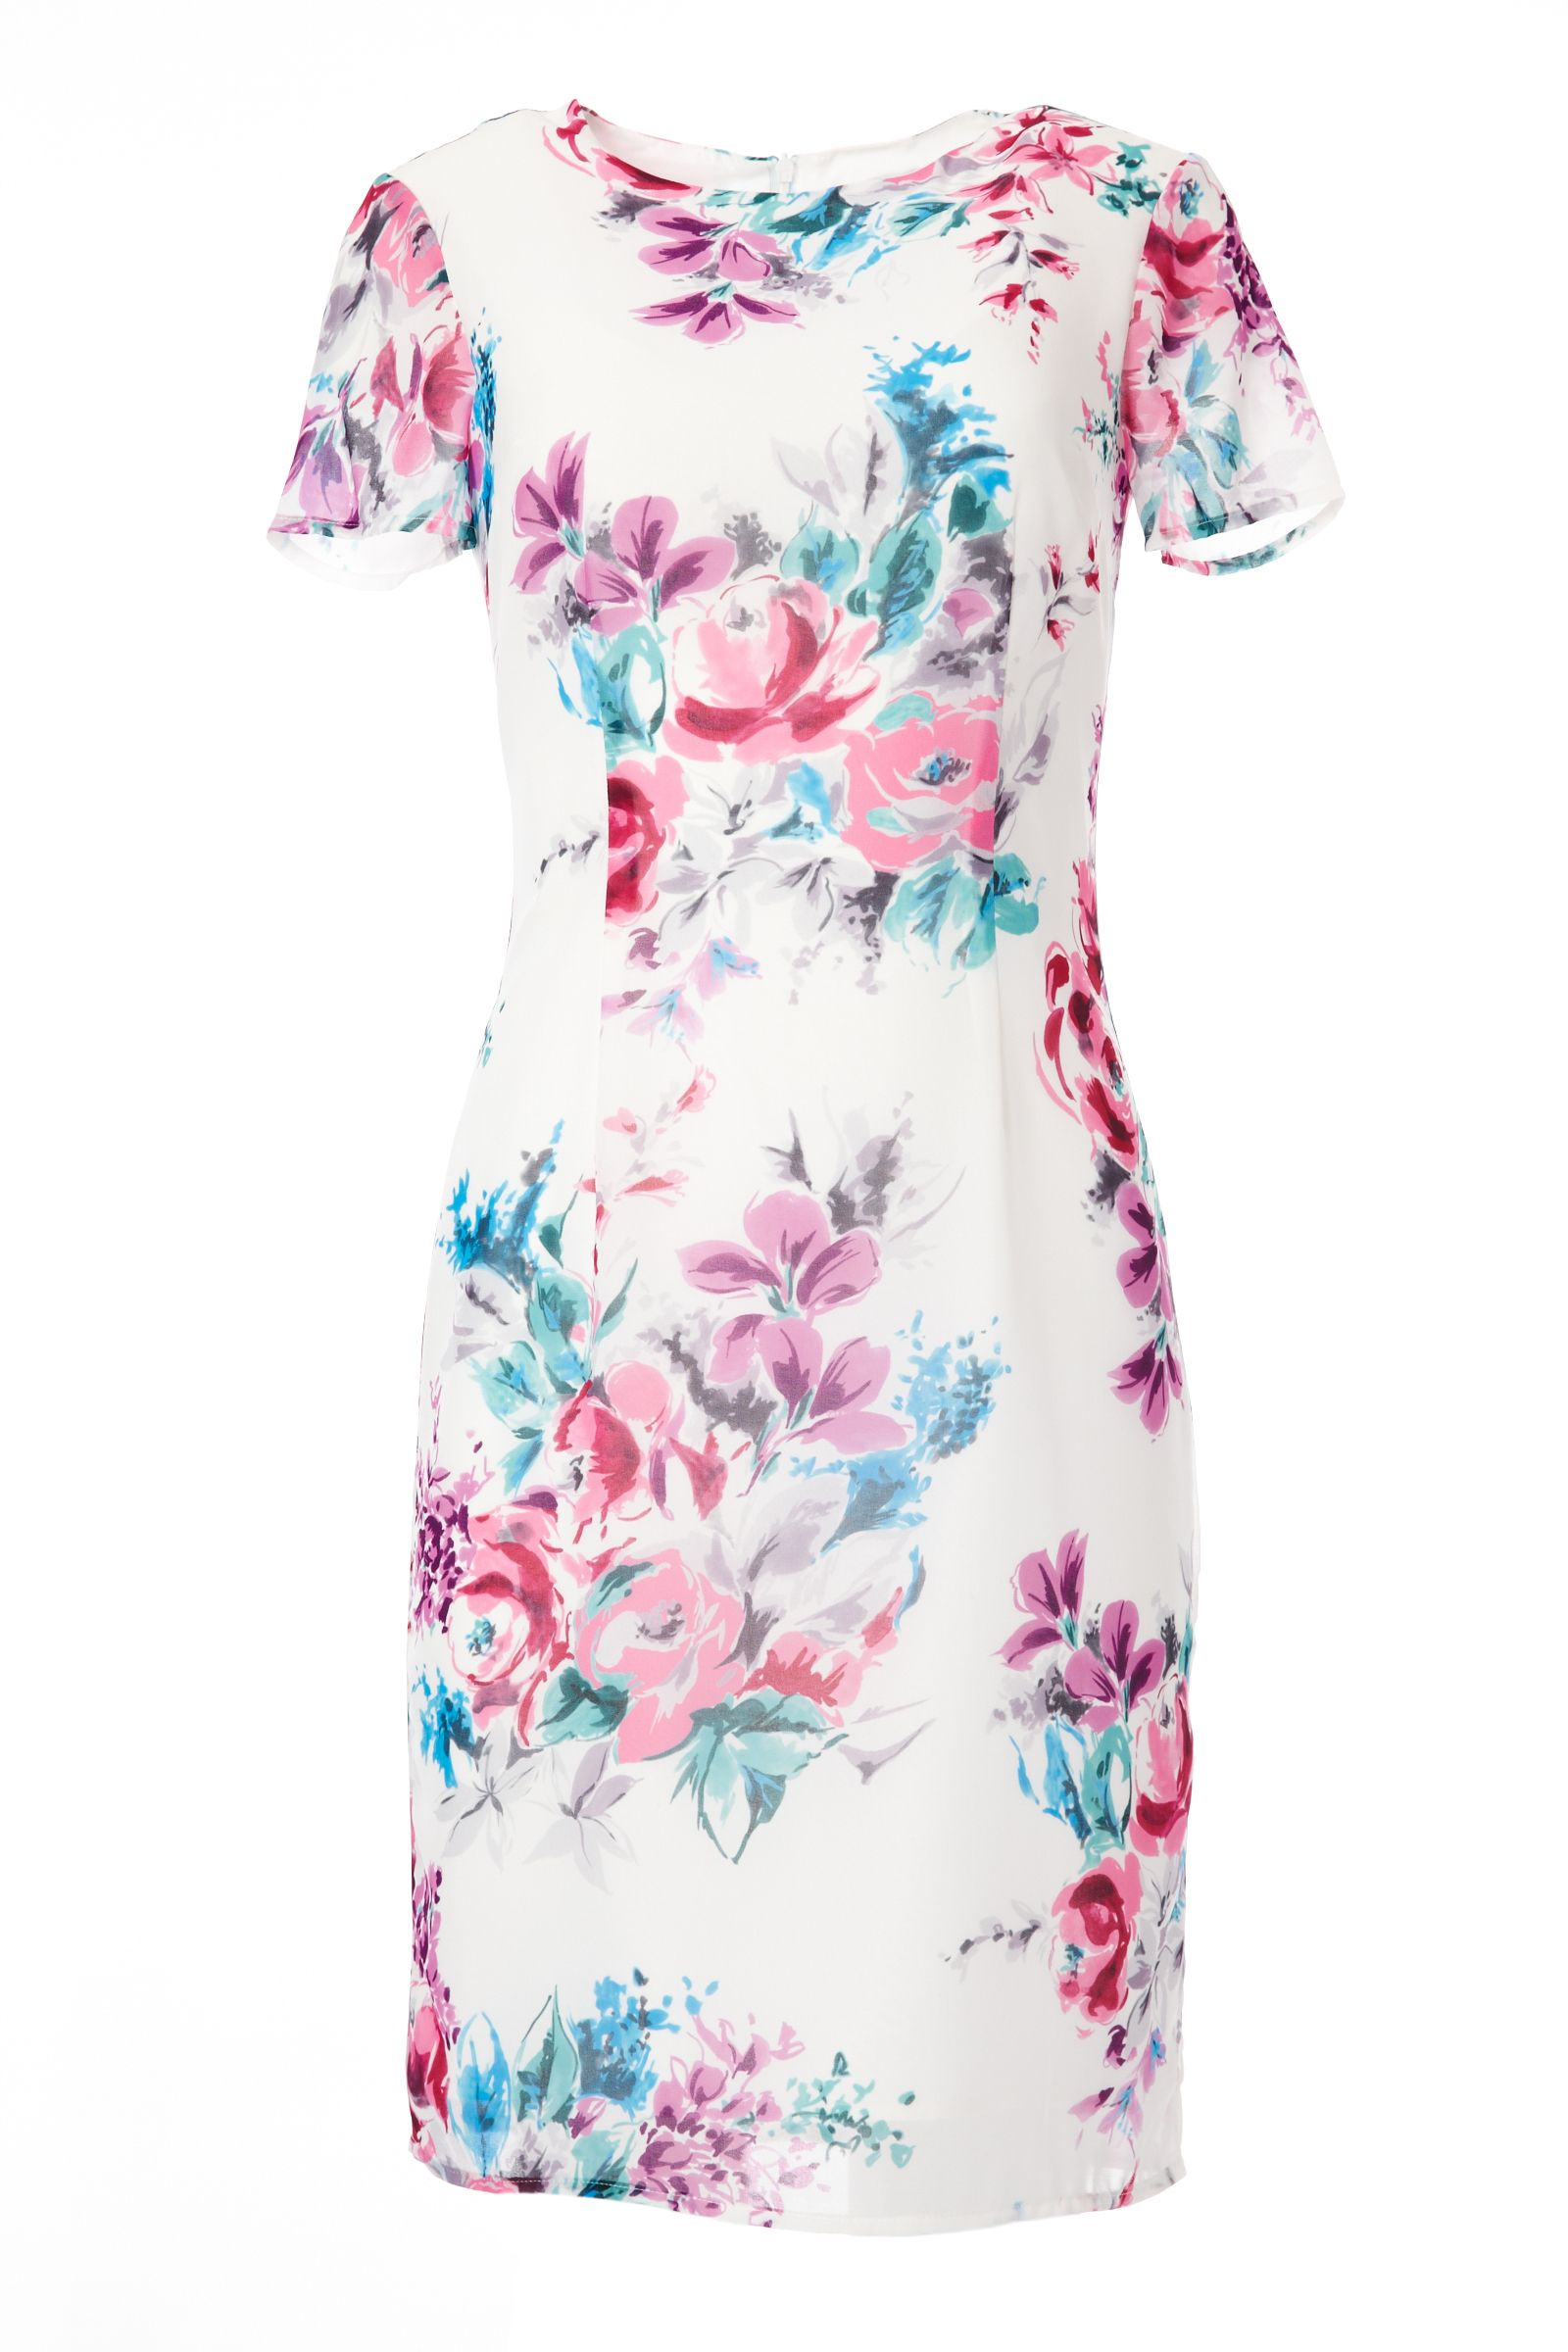 Carolina Cavour Kneelength Chiffon Flower Print Dress, Multi-Coloured